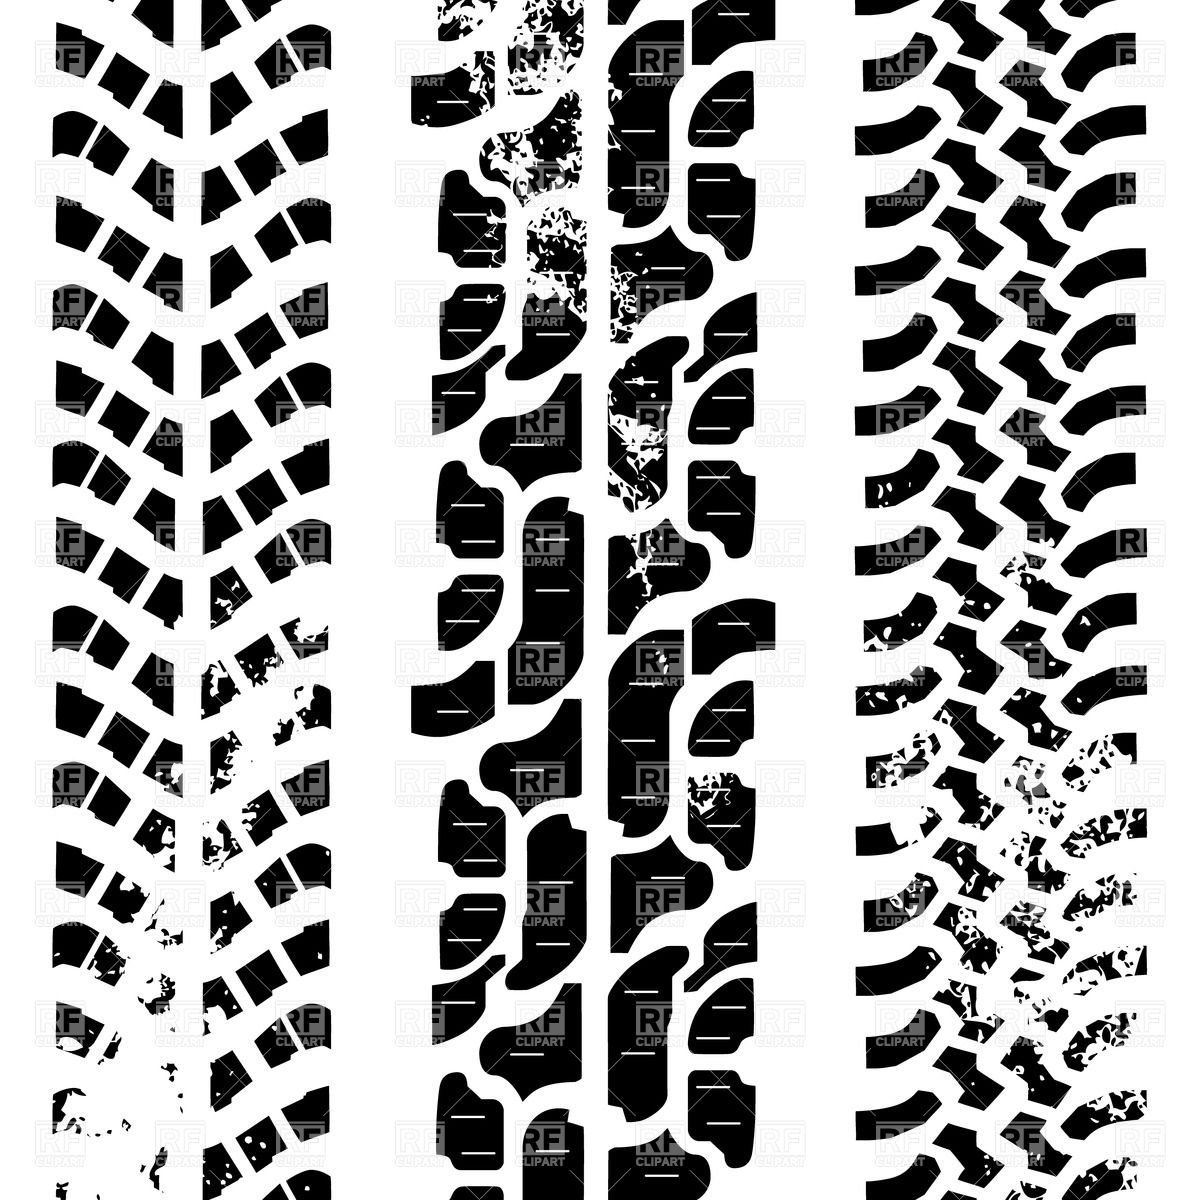 Tire tread patterns clipart clip art free stock Tire tread patterns clipart - ClipartFest clip art free stock